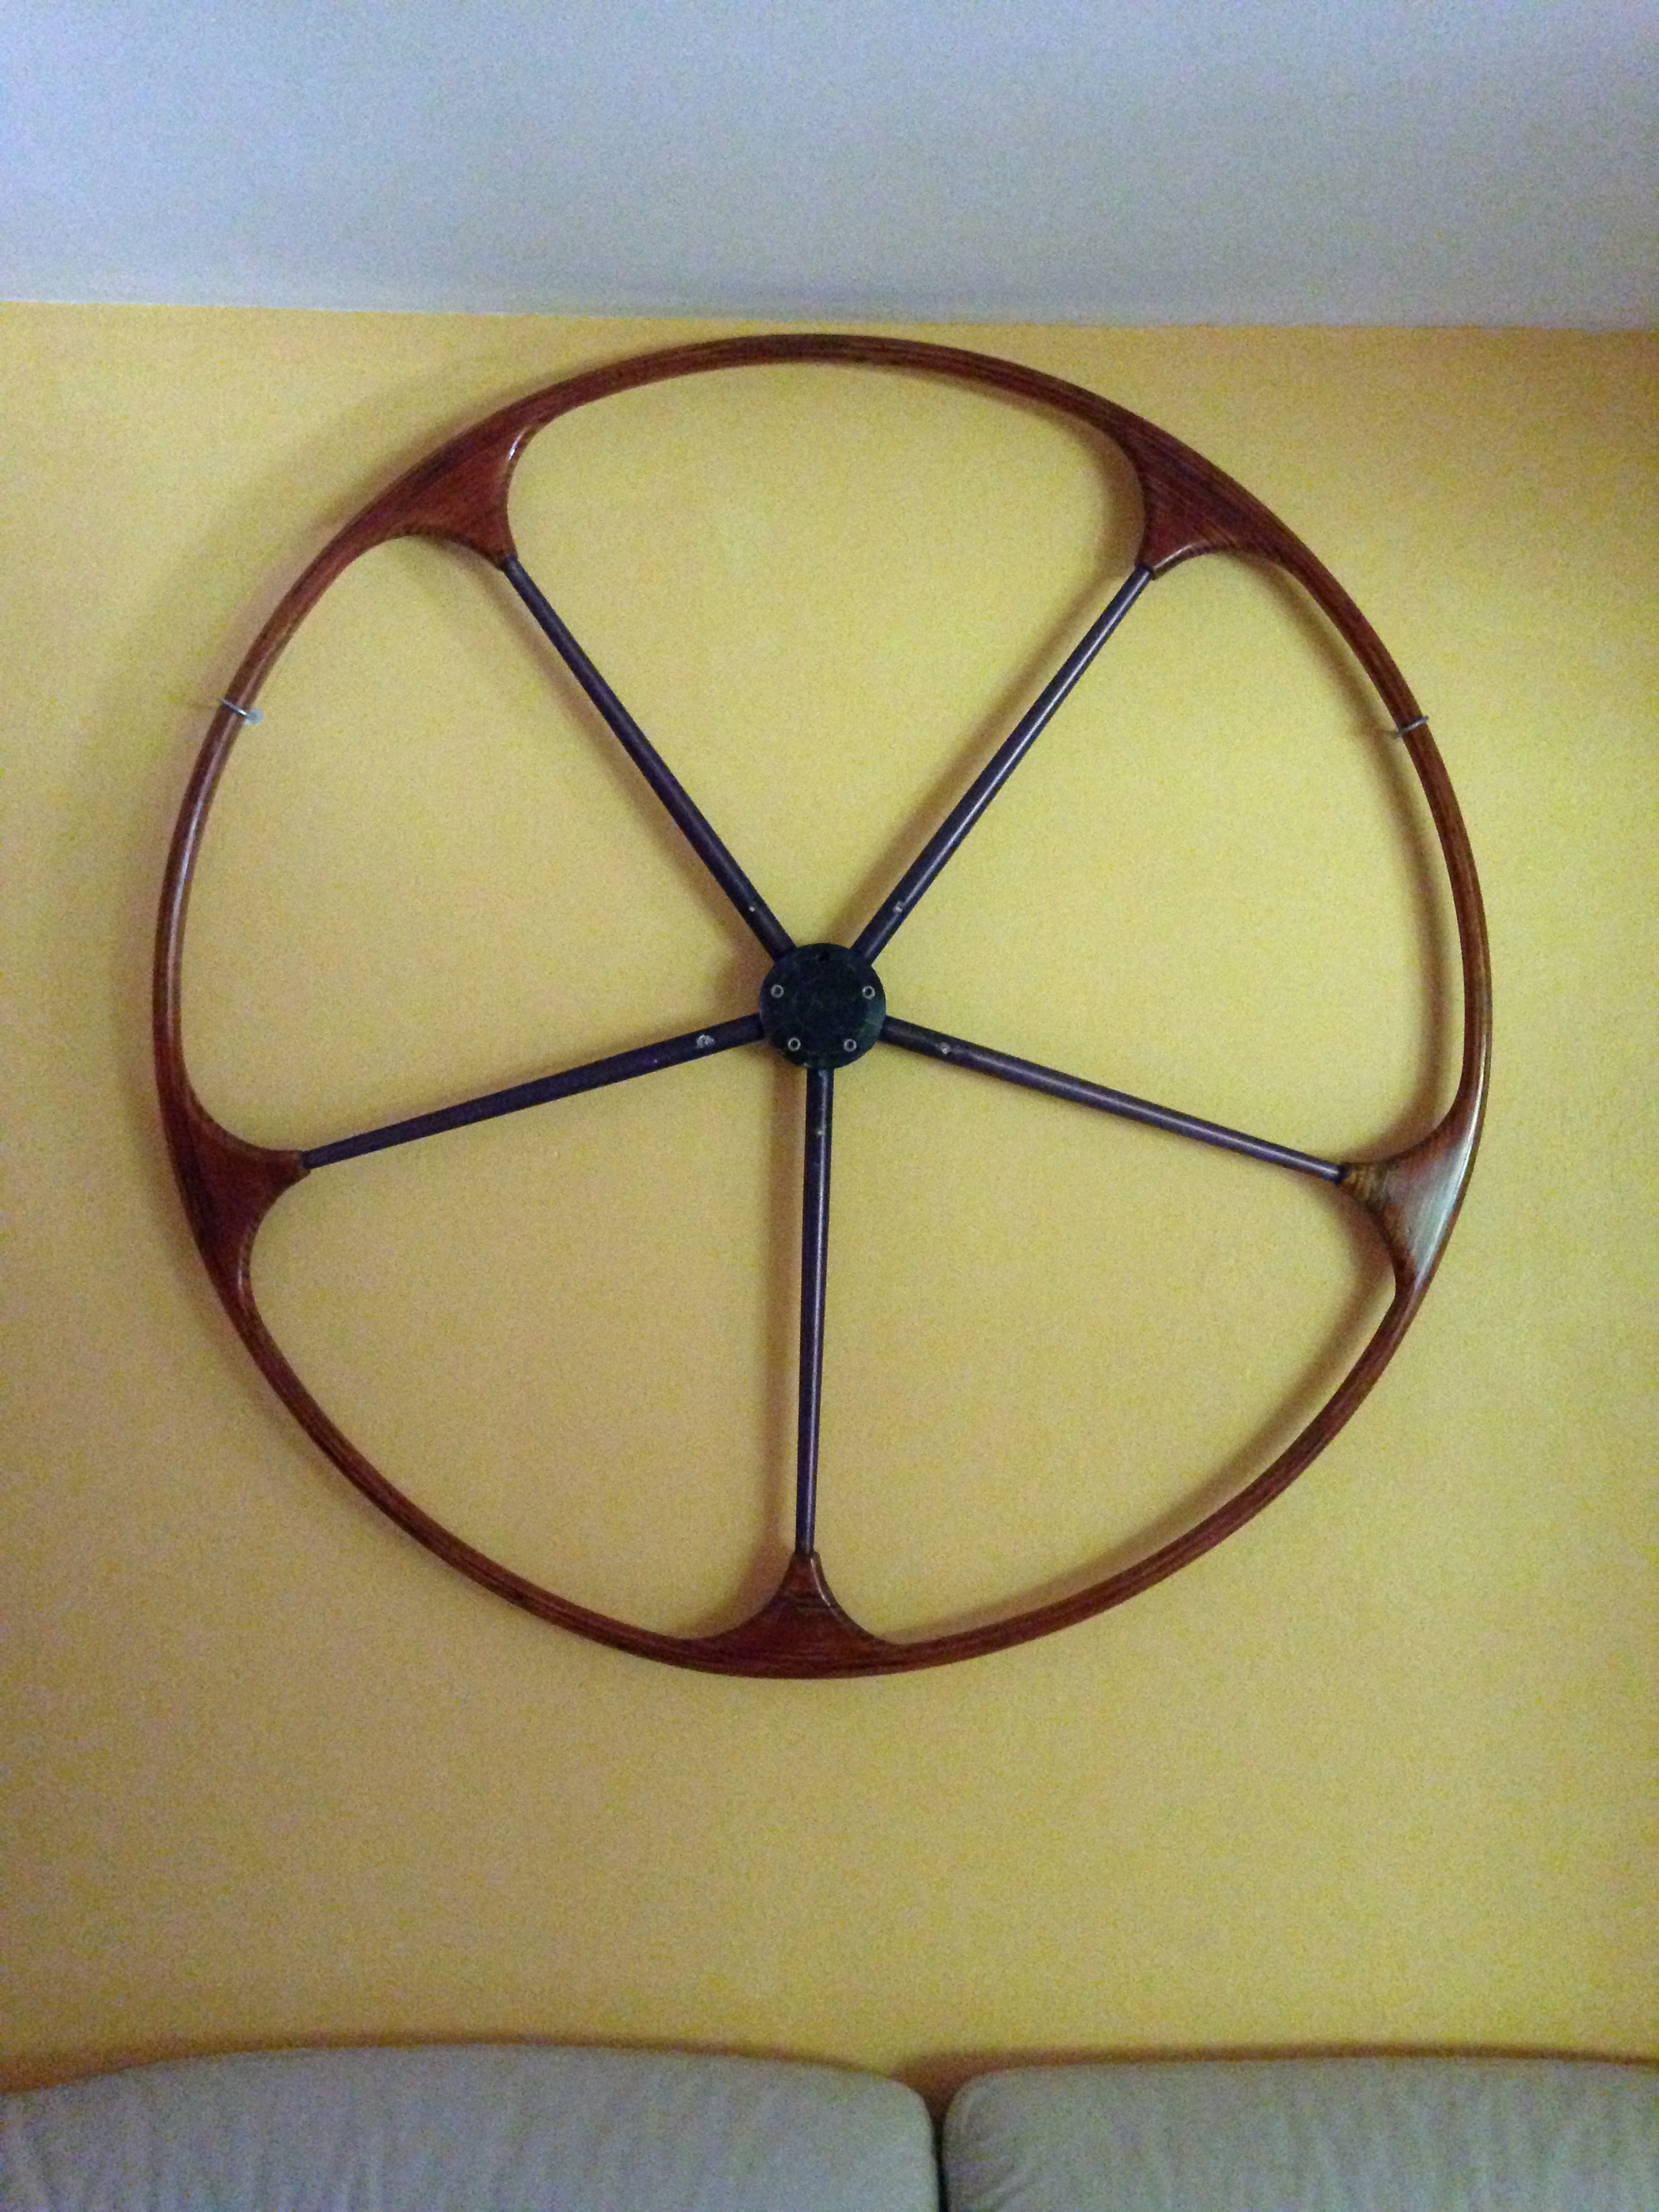 Wheel from one of Etienne's Boats